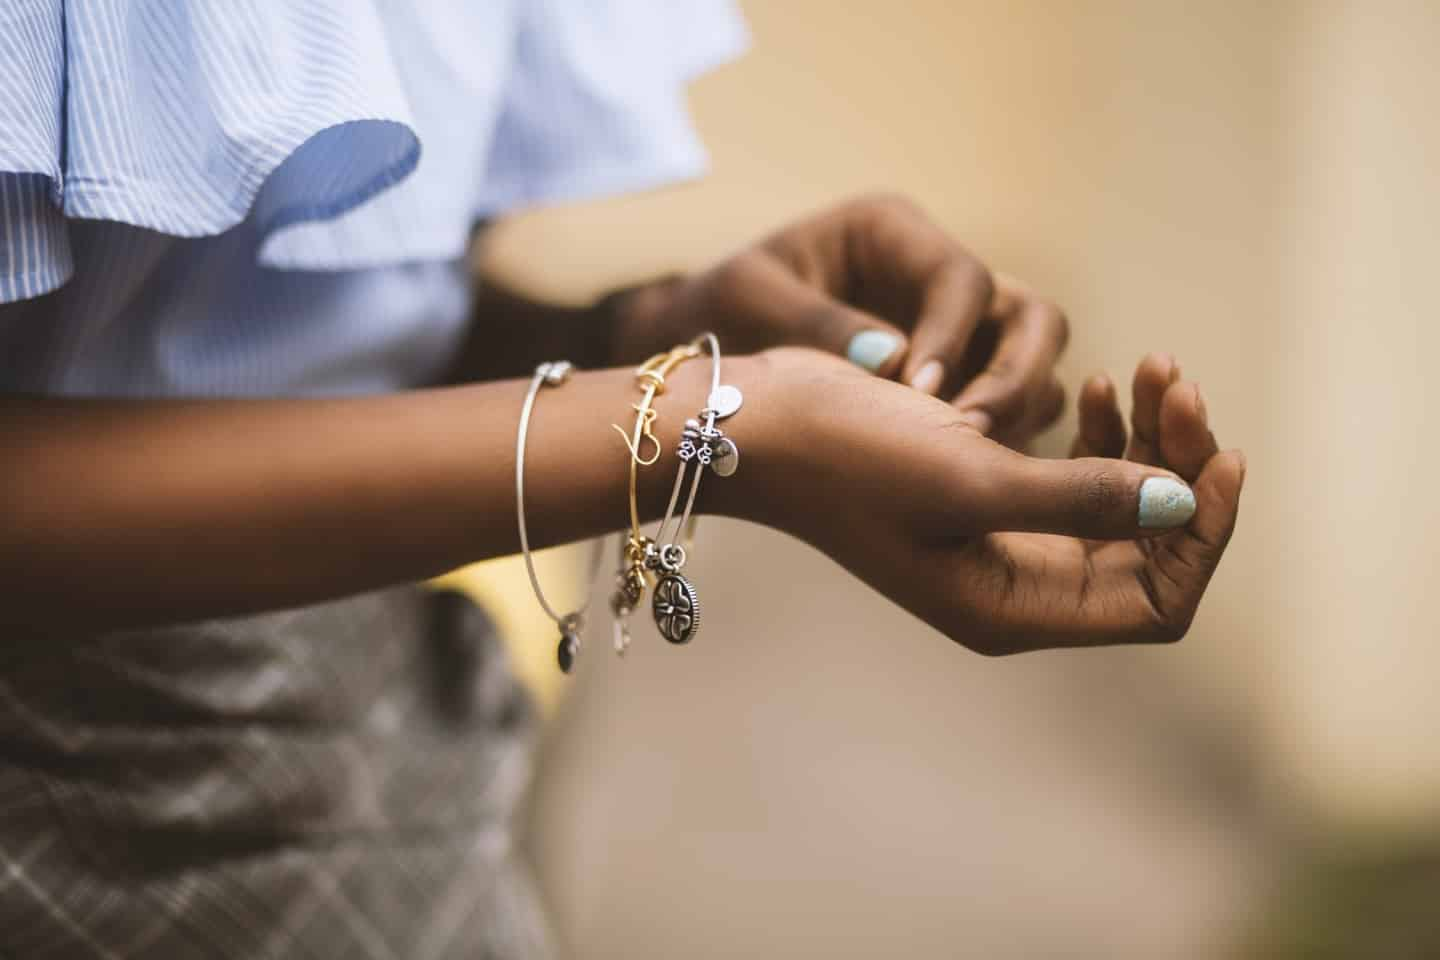 Shine Like A Tiffany Diamond: 6 Best Practices for Jewelry Brands